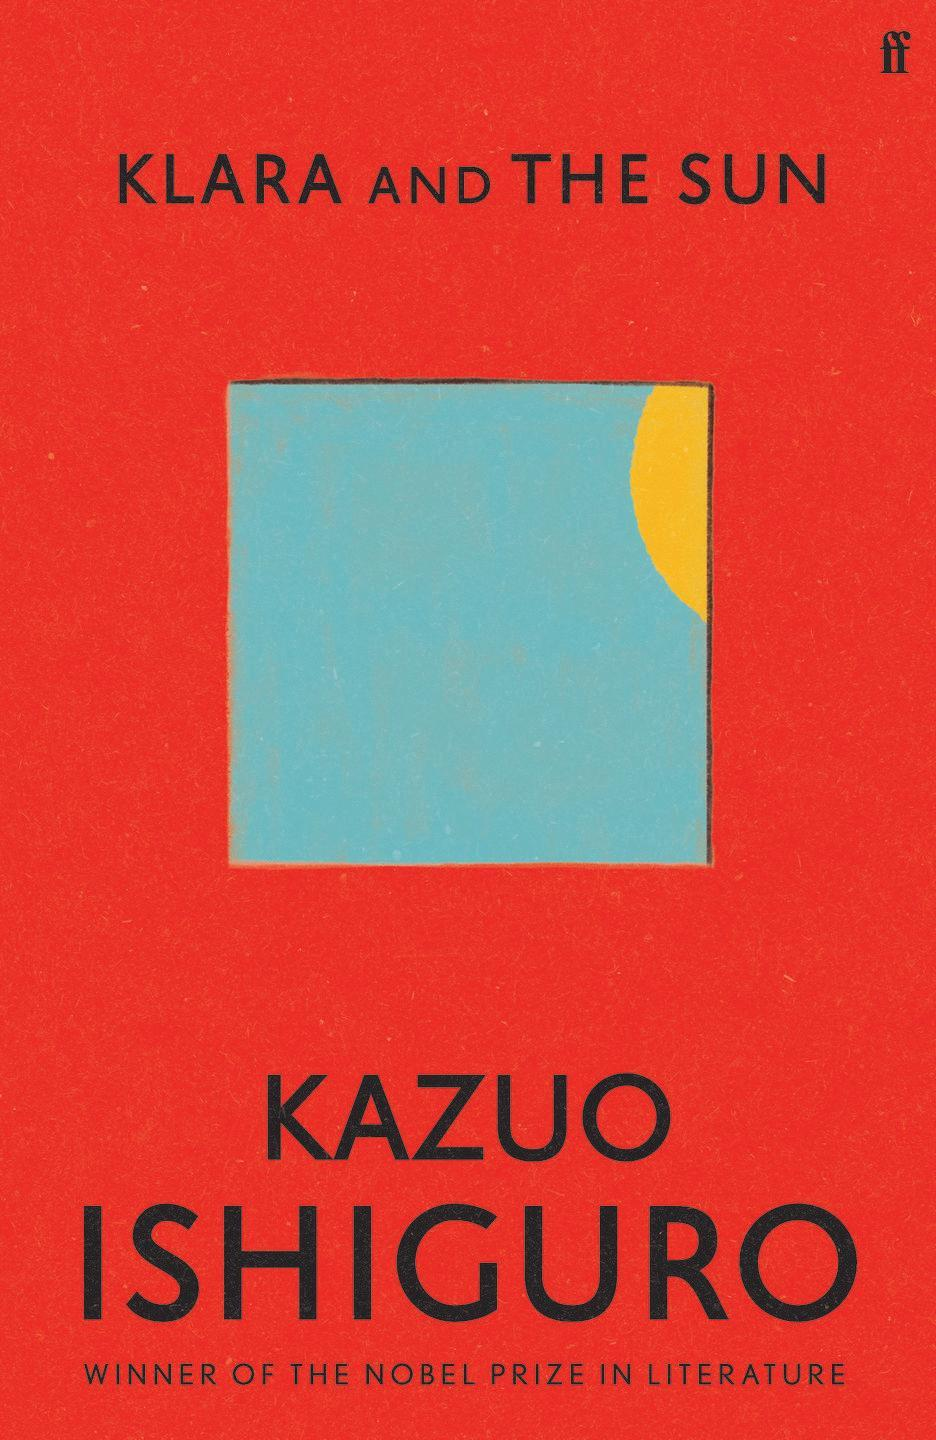 """<p>Set in an undetermined future, where AI plays a central role in society, Klara is an 'AF' – an Artificial Friend, valued for her ability to serve as a human companion for the teenager Josie. At the heart of the novel is their relationship, which prompts fresh perspectives on the fragility of society and what it means to be human. - Helena Lee</p><p><strong>Read Bazaar's interview with Kazuo Ishiguro in the <a href=""""https://magsdirect.co.uk/magazine/harpers-bazaar-uk-apr-21/"""" rel=""""nofollow noopener"""" target=""""_blank"""" data-ylk=""""slk:April 2021"""" class=""""link rapid-noclick-resp"""">April 2021 </a>issue.</strong></p><p><a class=""""link rapid-noclick-resp"""" href=""""https://www.amazon.co.uk/Klara-Sun-hardback-Kazuo-Ishiguro/dp/057136487X/ref=sr_1_1?crid=36MV1HSLD5ZF0&dchild=1&keywords=klara+and+the+sun&qid=1616005014&sprefix=KLARA%2Caps%2C167&sr=8-1&tag=hearstuk-yahoo-21&ascsubtag=%5Bartid%7C1927.g.35865085%5Bsrc%7Cyahoo-uk"""" rel=""""nofollow noopener"""" target=""""_blank"""" data-ylk=""""slk:SHOP NOW"""">SHOP NOW</a></p>"""